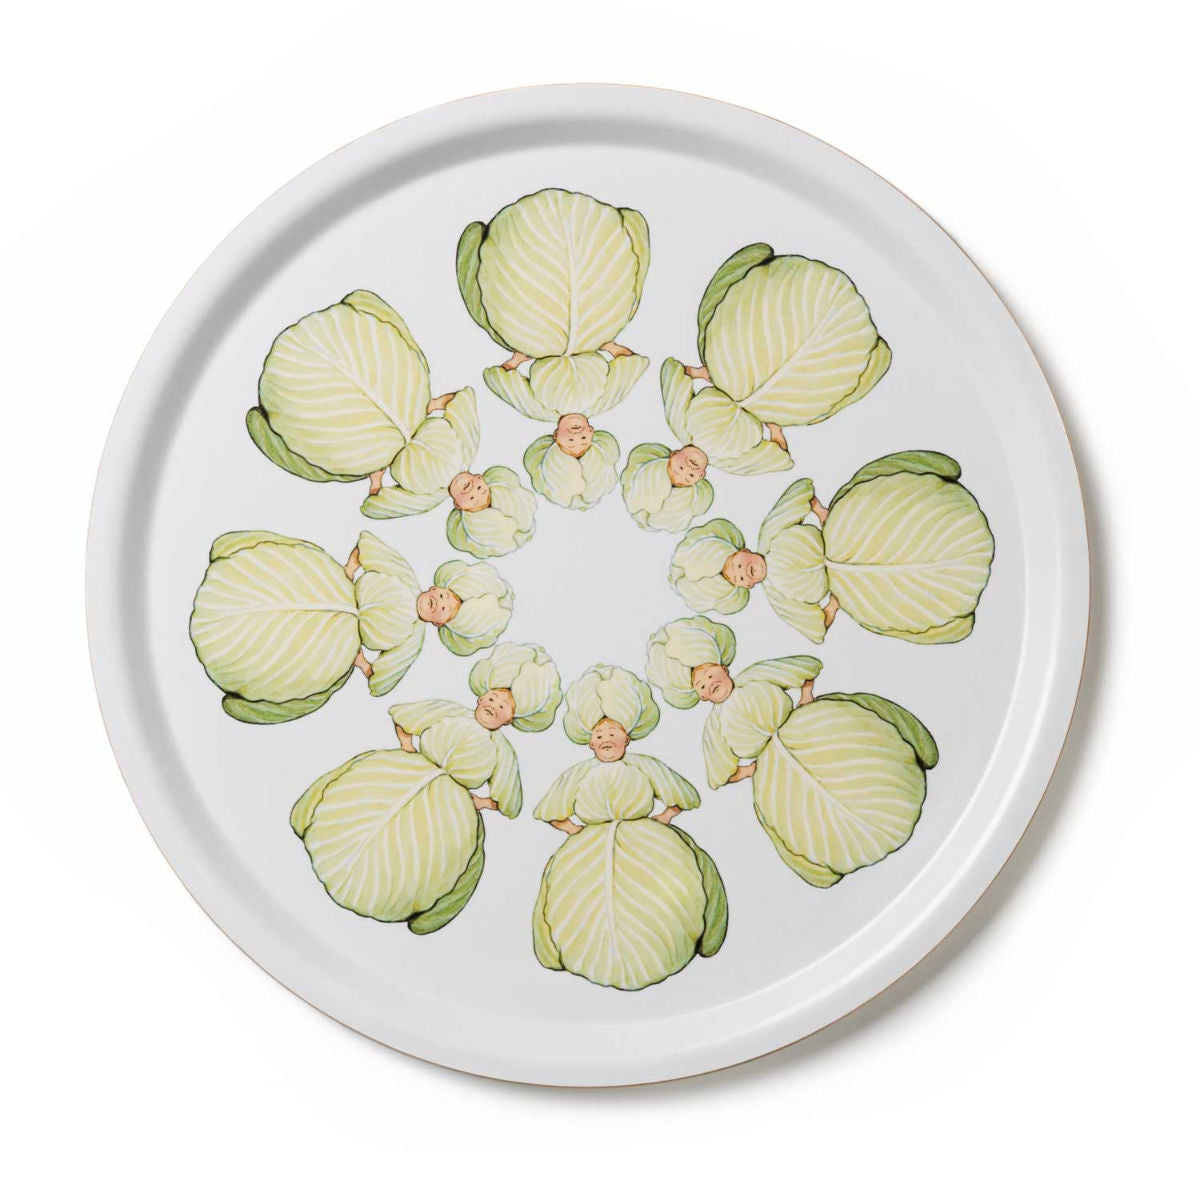 Design House Stockholm Elsa Beskow tray Ø35cm, mrs cabbage